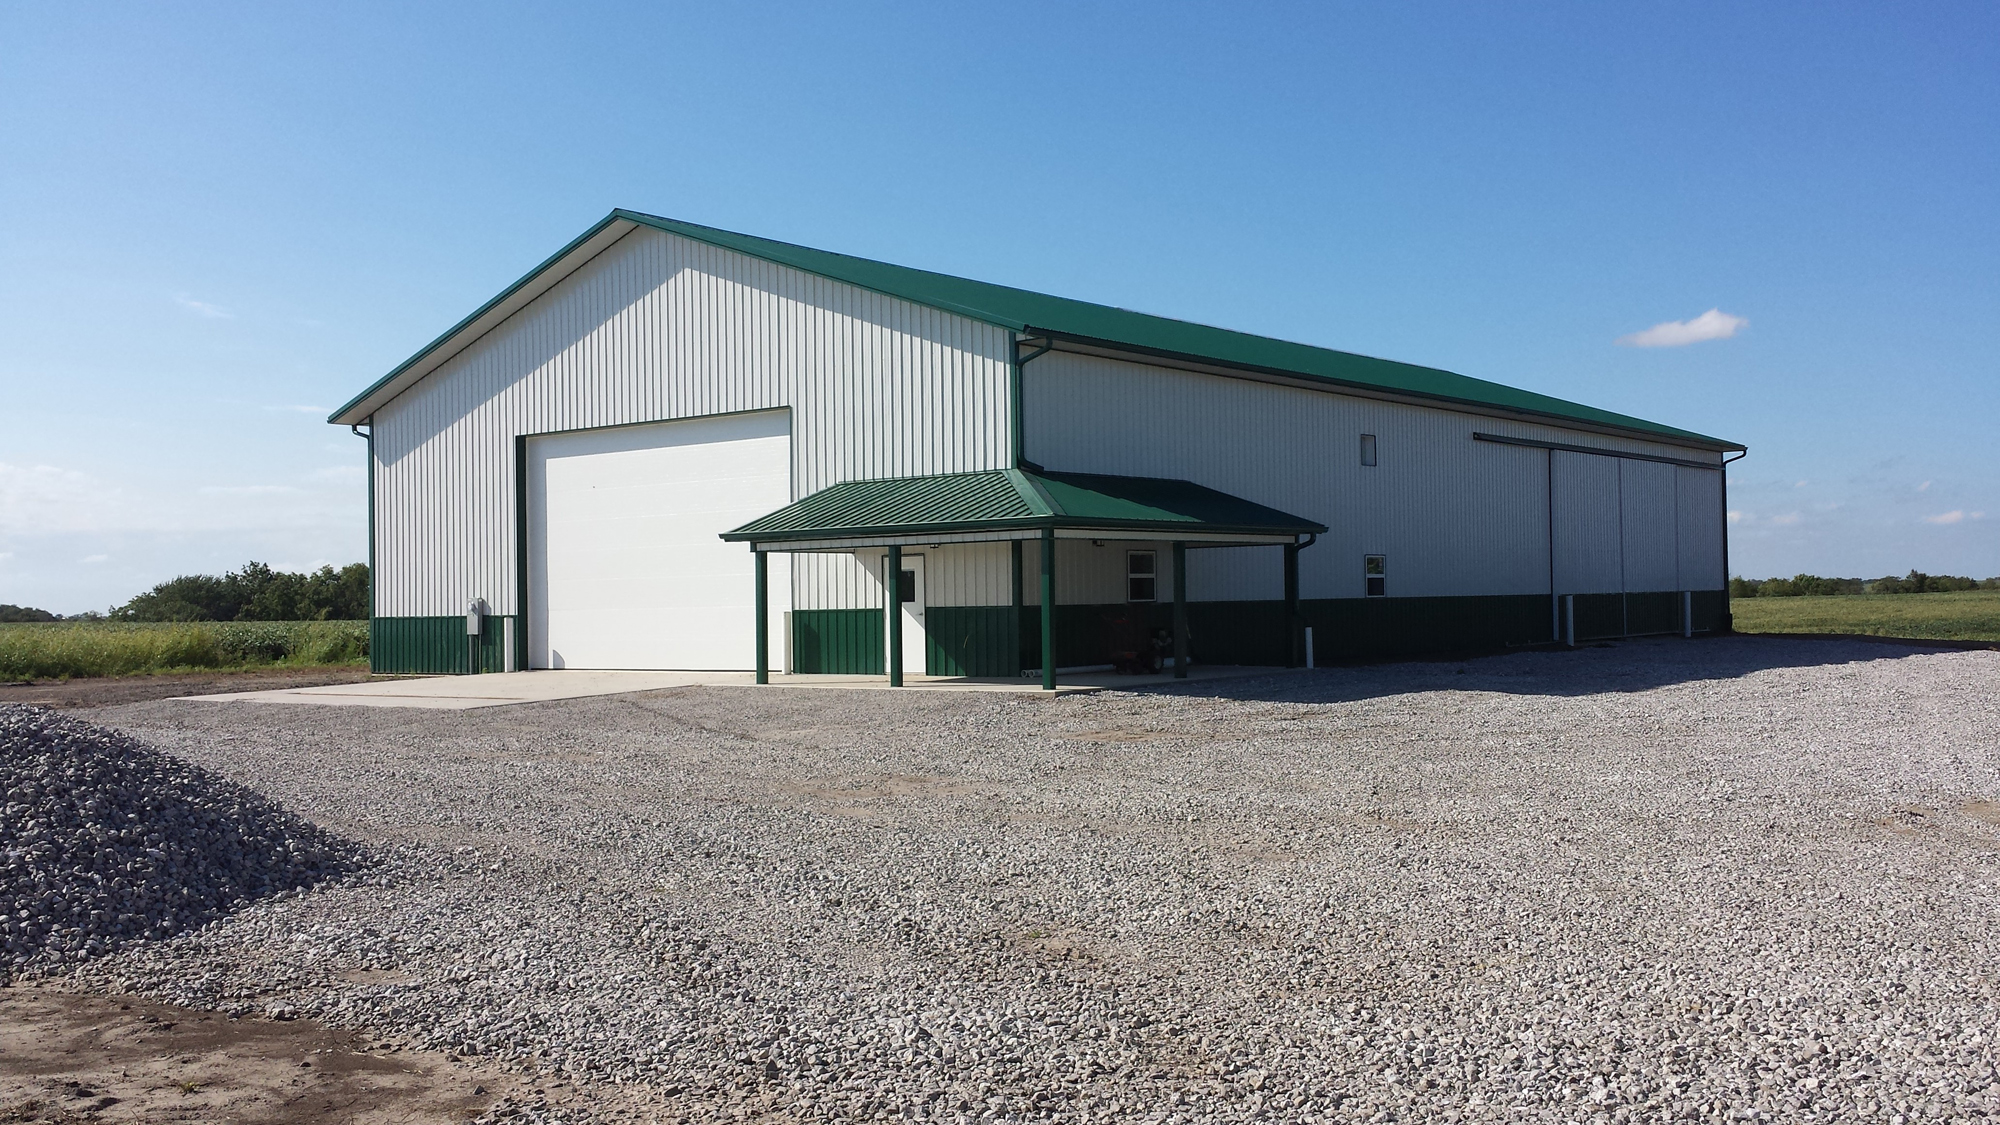 60 X 120 X 18 Ag Shop And Storage Building W 3